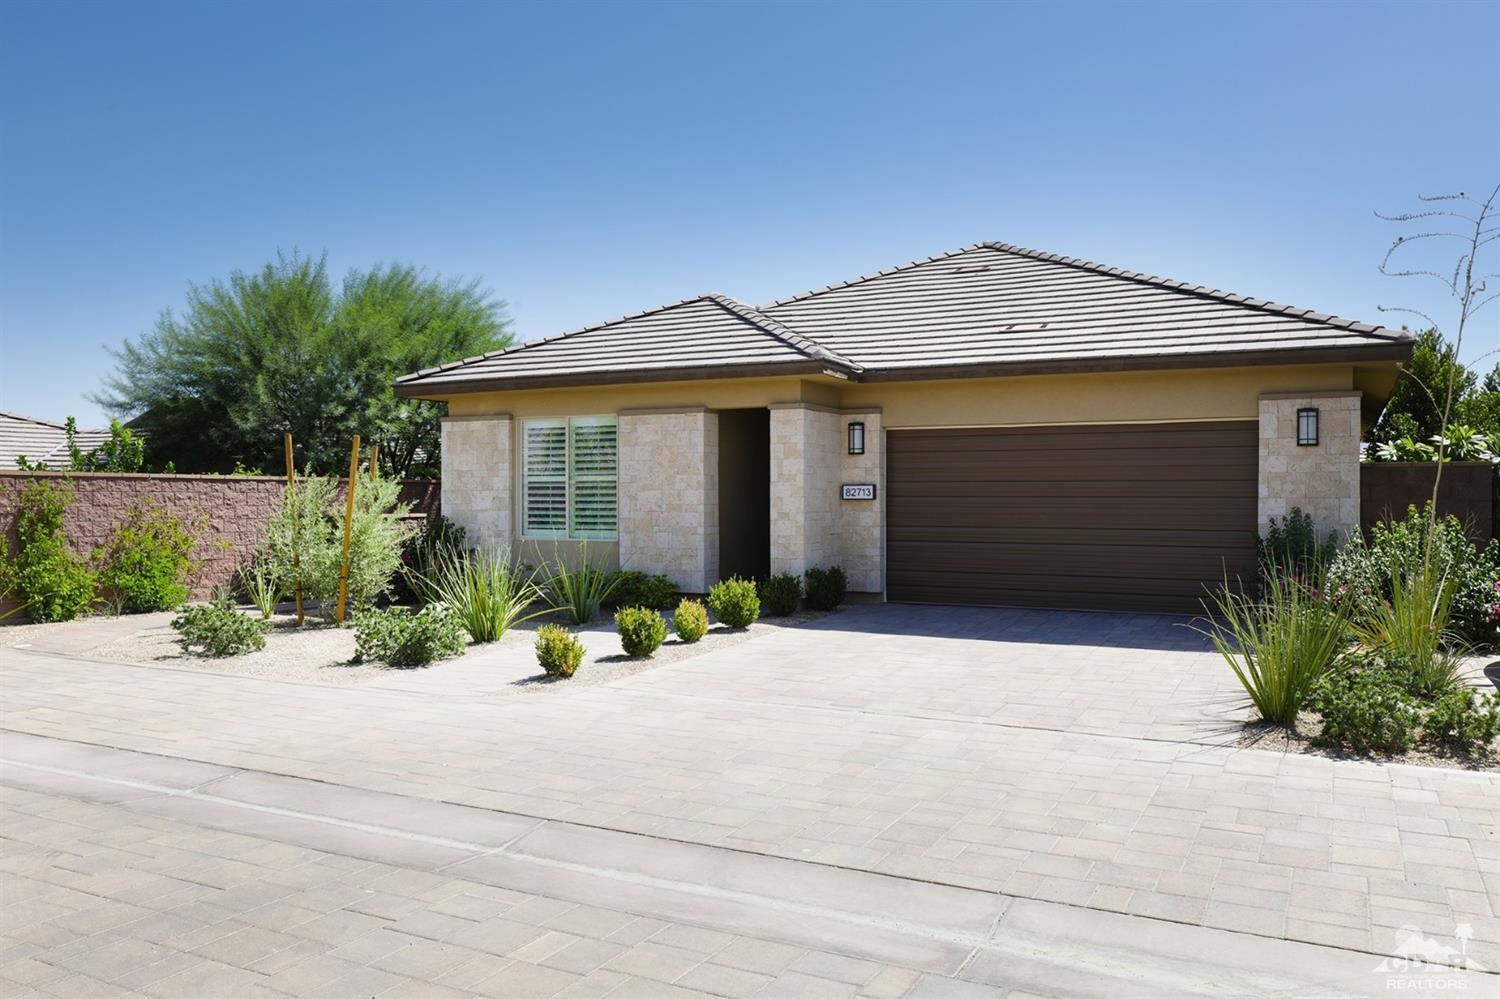 Photo of 82713 Summerhill Court, Indio, CA 92201